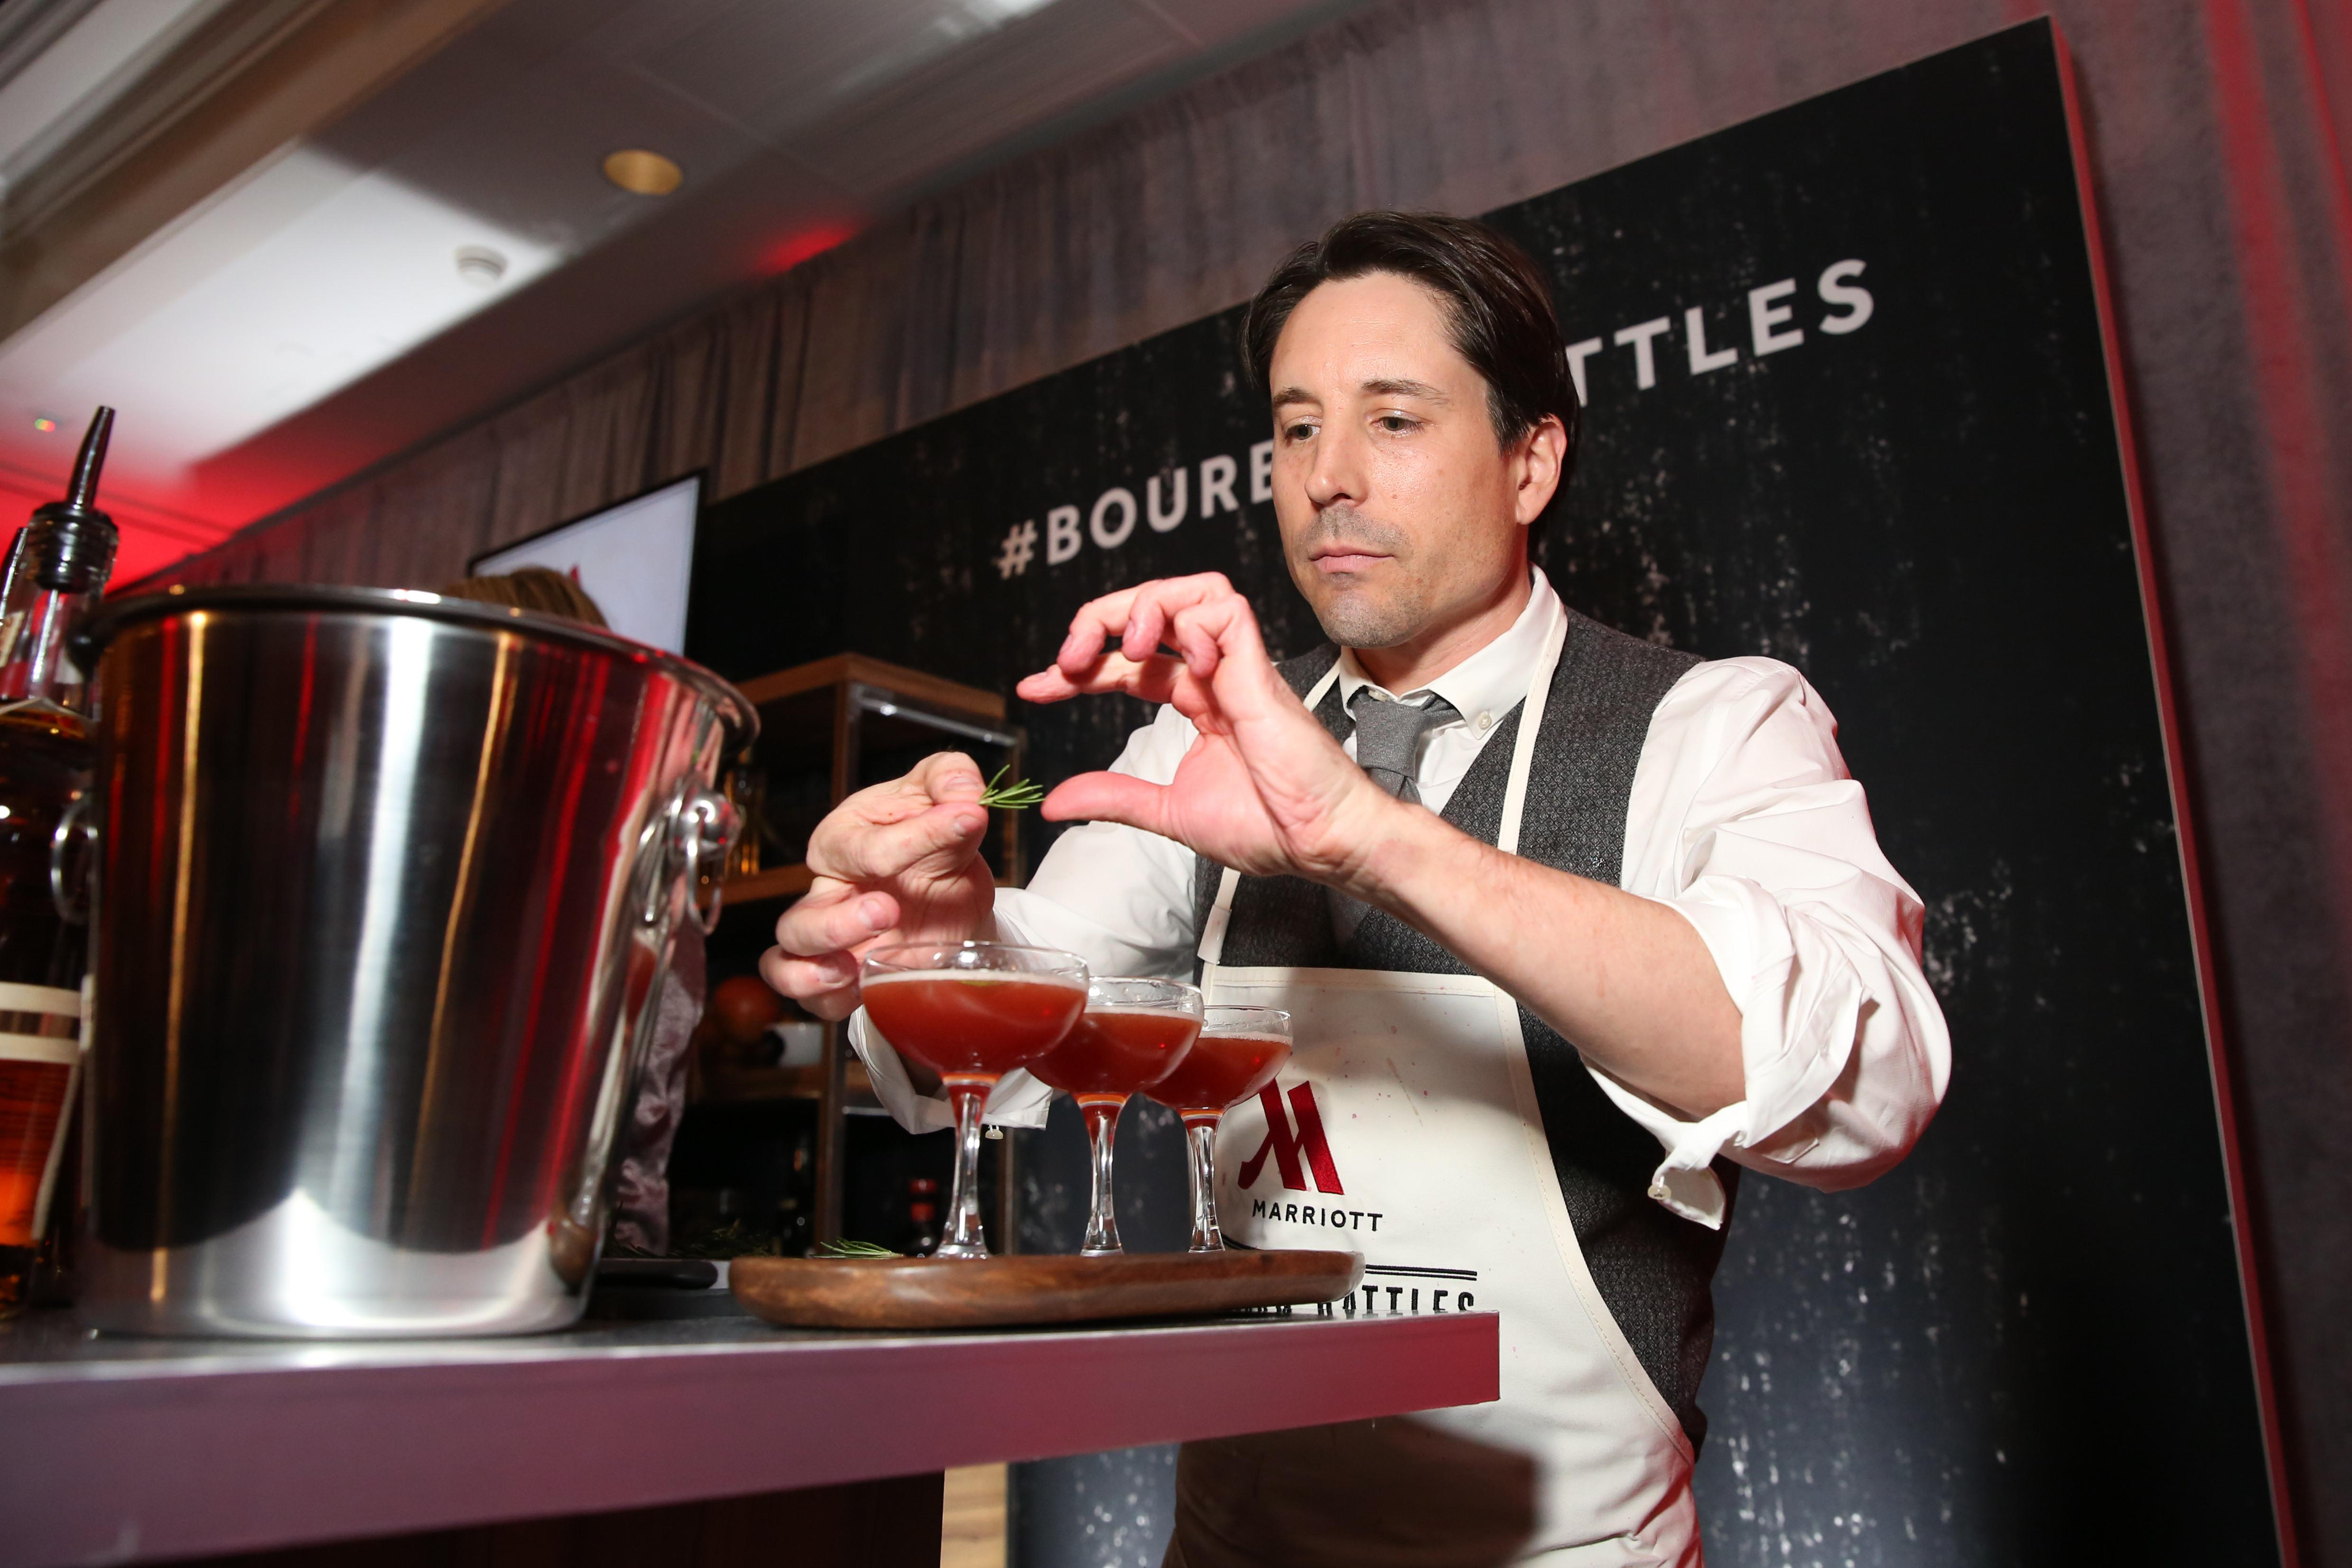 The booze was flowing at The Washington Marriott Georgetown on March 29 as journalists and bartenders battled to make the best cocktails. Jeff DuFour of the National Journal came ahead of his fellow media members and his drink will remain on the Marriott's menu for 6 months - all proceeds will benefit charity. (Amanda Andrade-Rhoades/DC Refined)